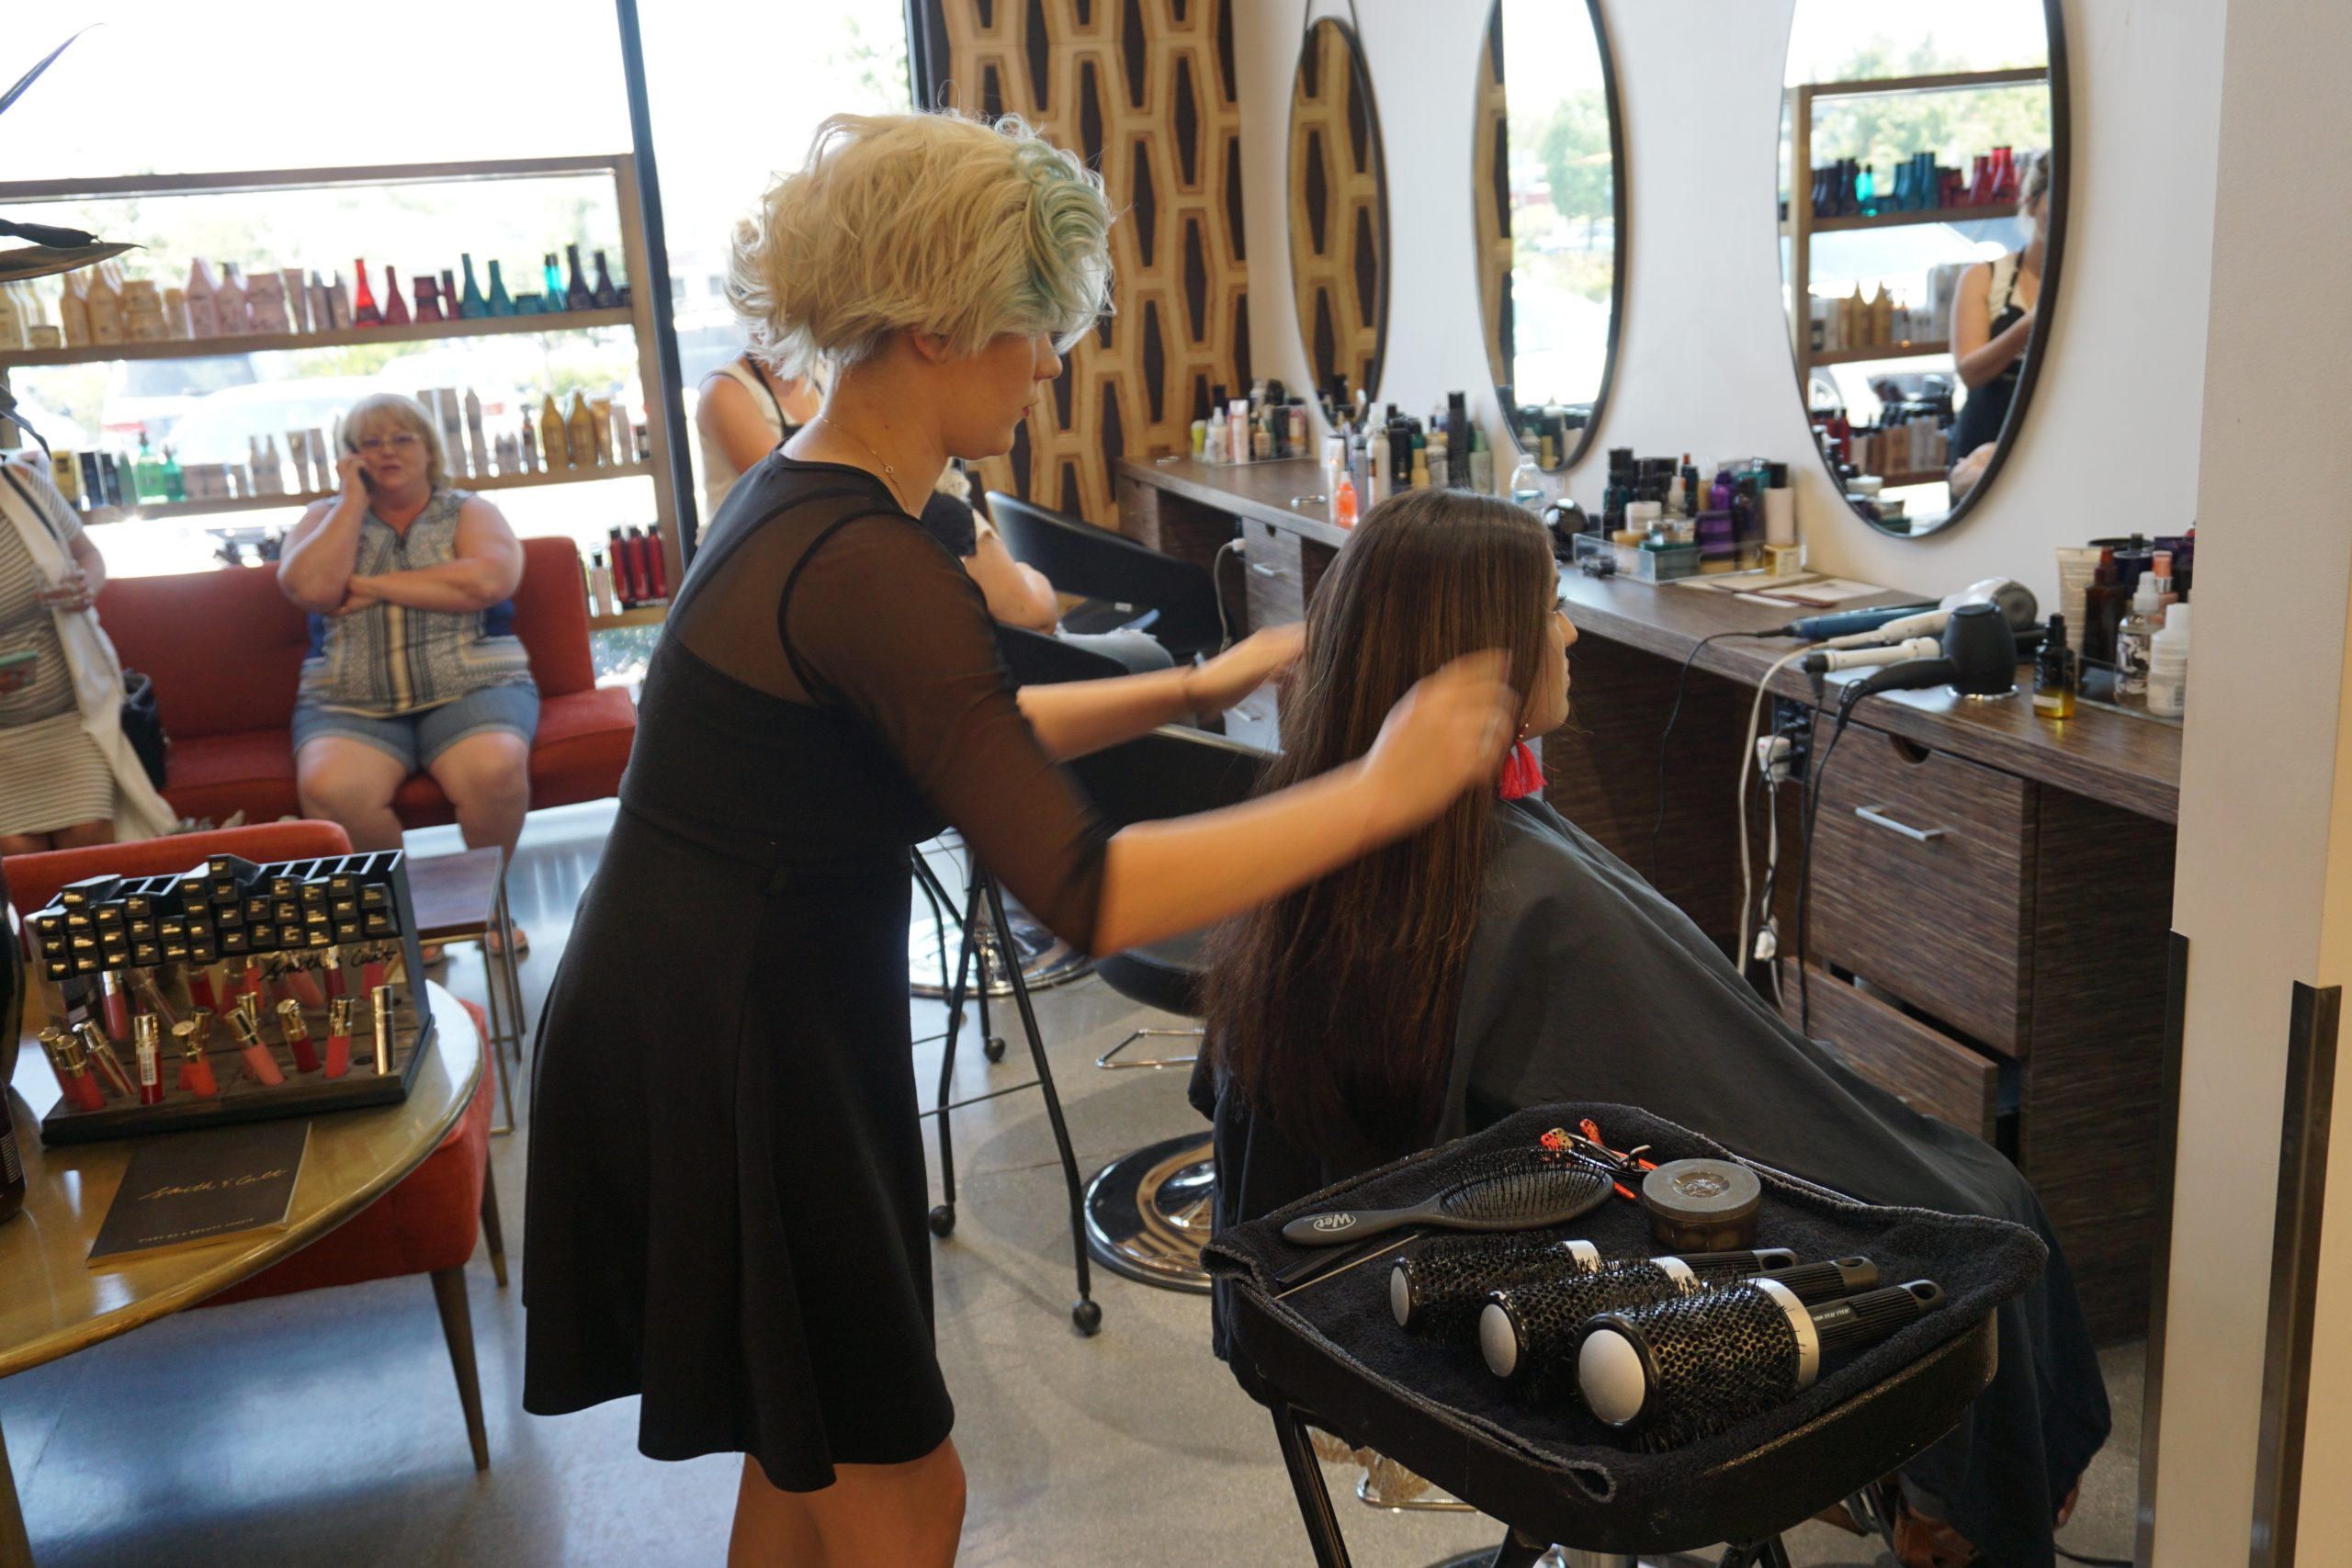 Blowouts And Braids For A Cause Atelier By Square Salon Amanda Pamblanco Las Vegas Fashion